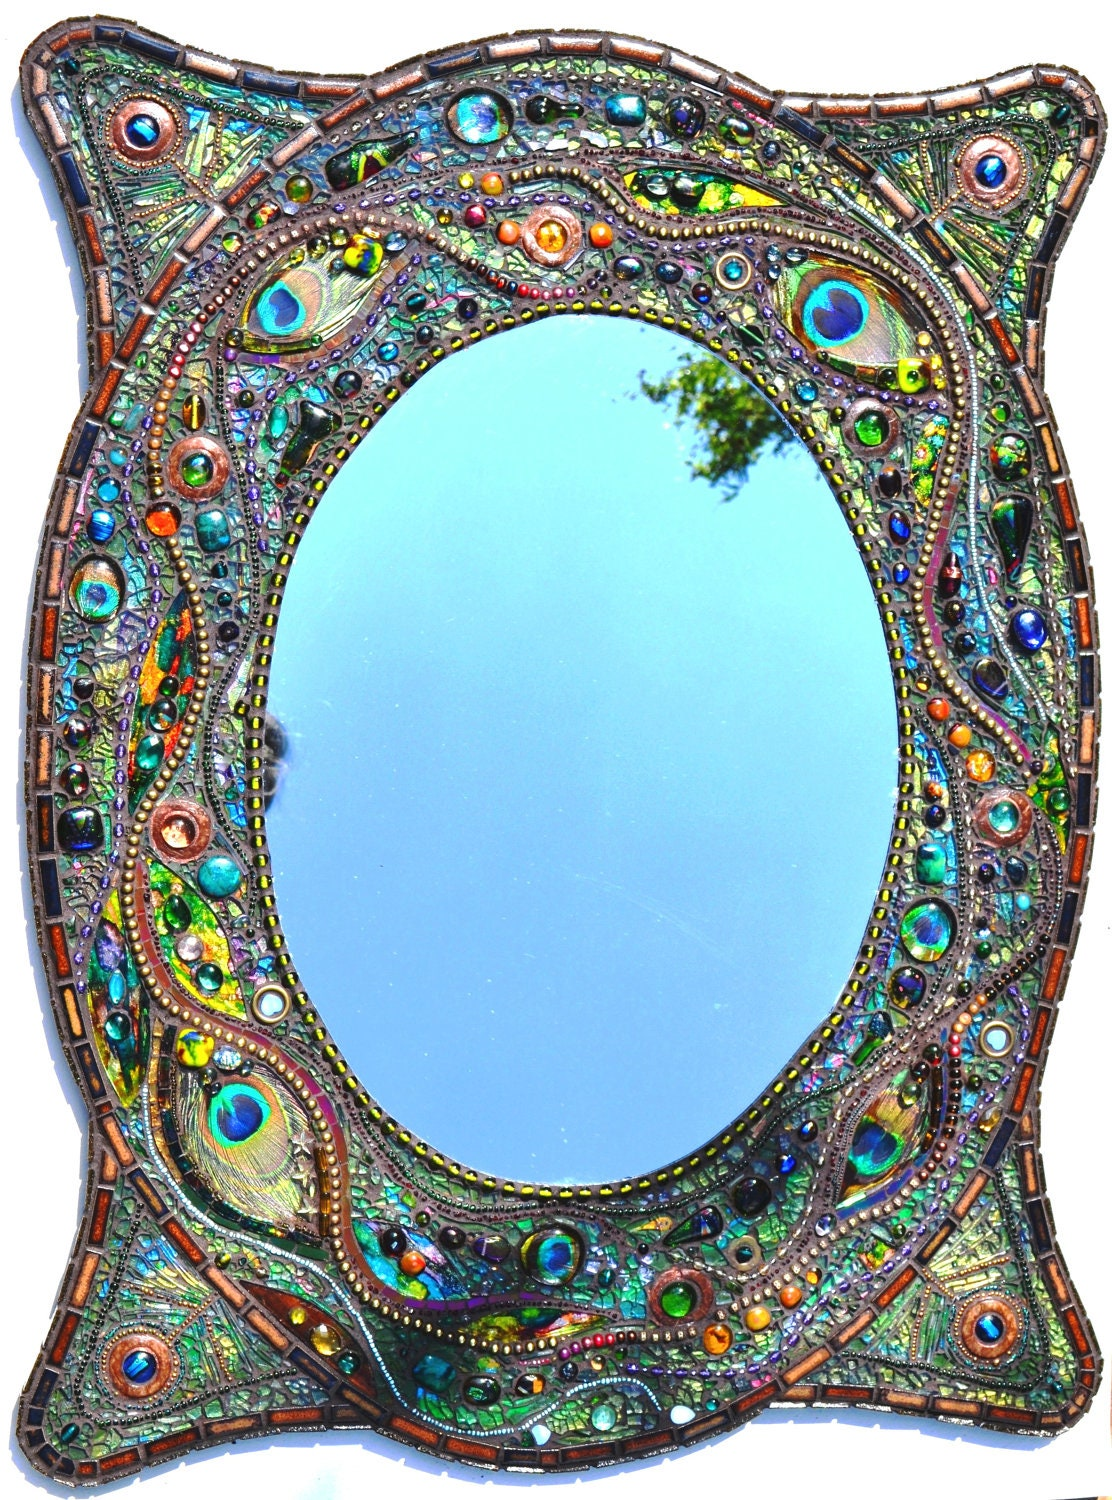 Sold mosaic peacock mirror mosaic art real peacock for Mosaique miroir